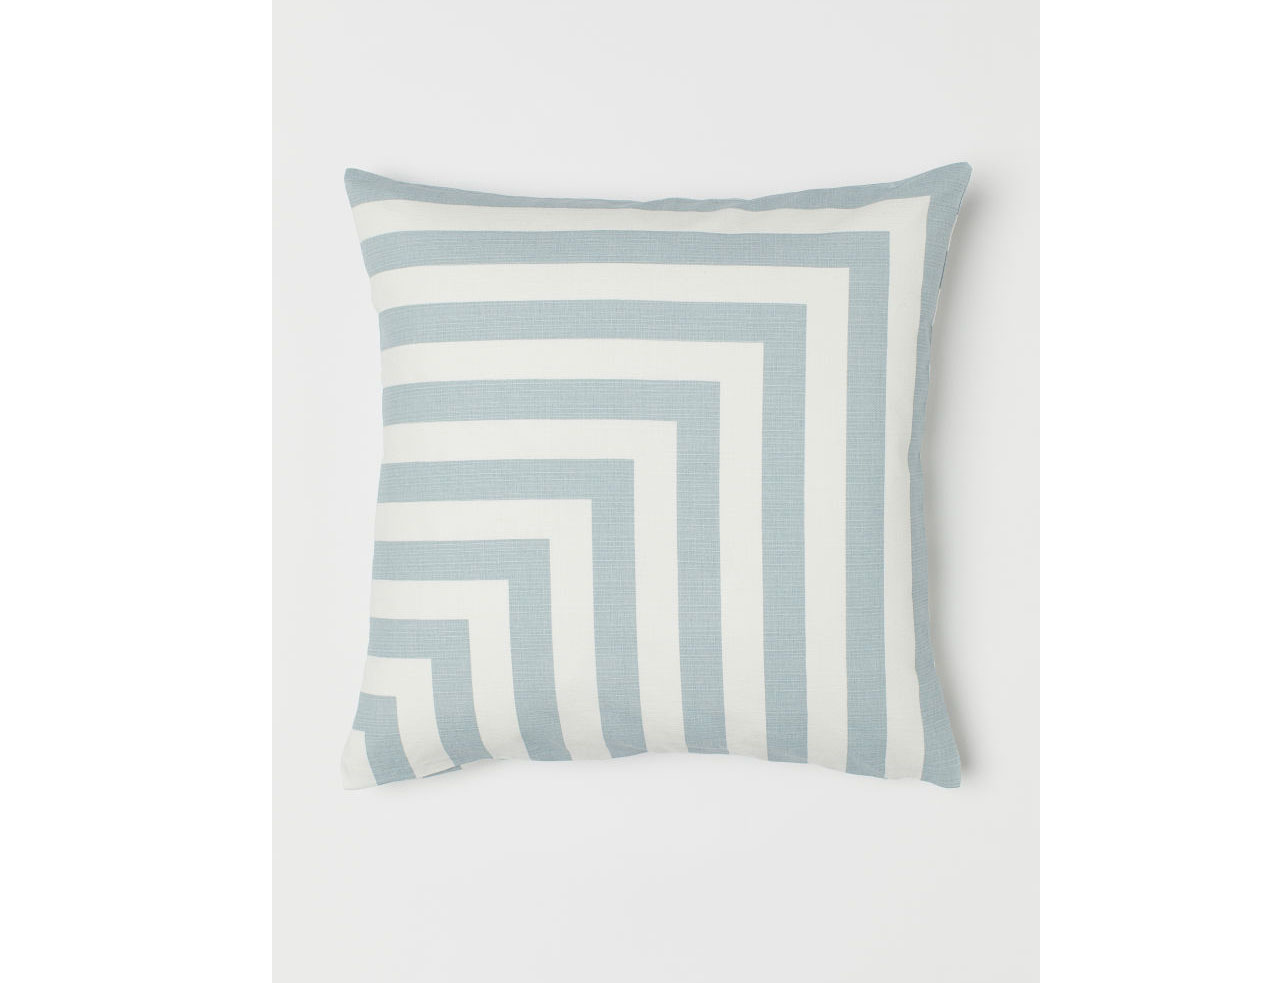 Patterned Cushion Cover in White/Light Turquoise